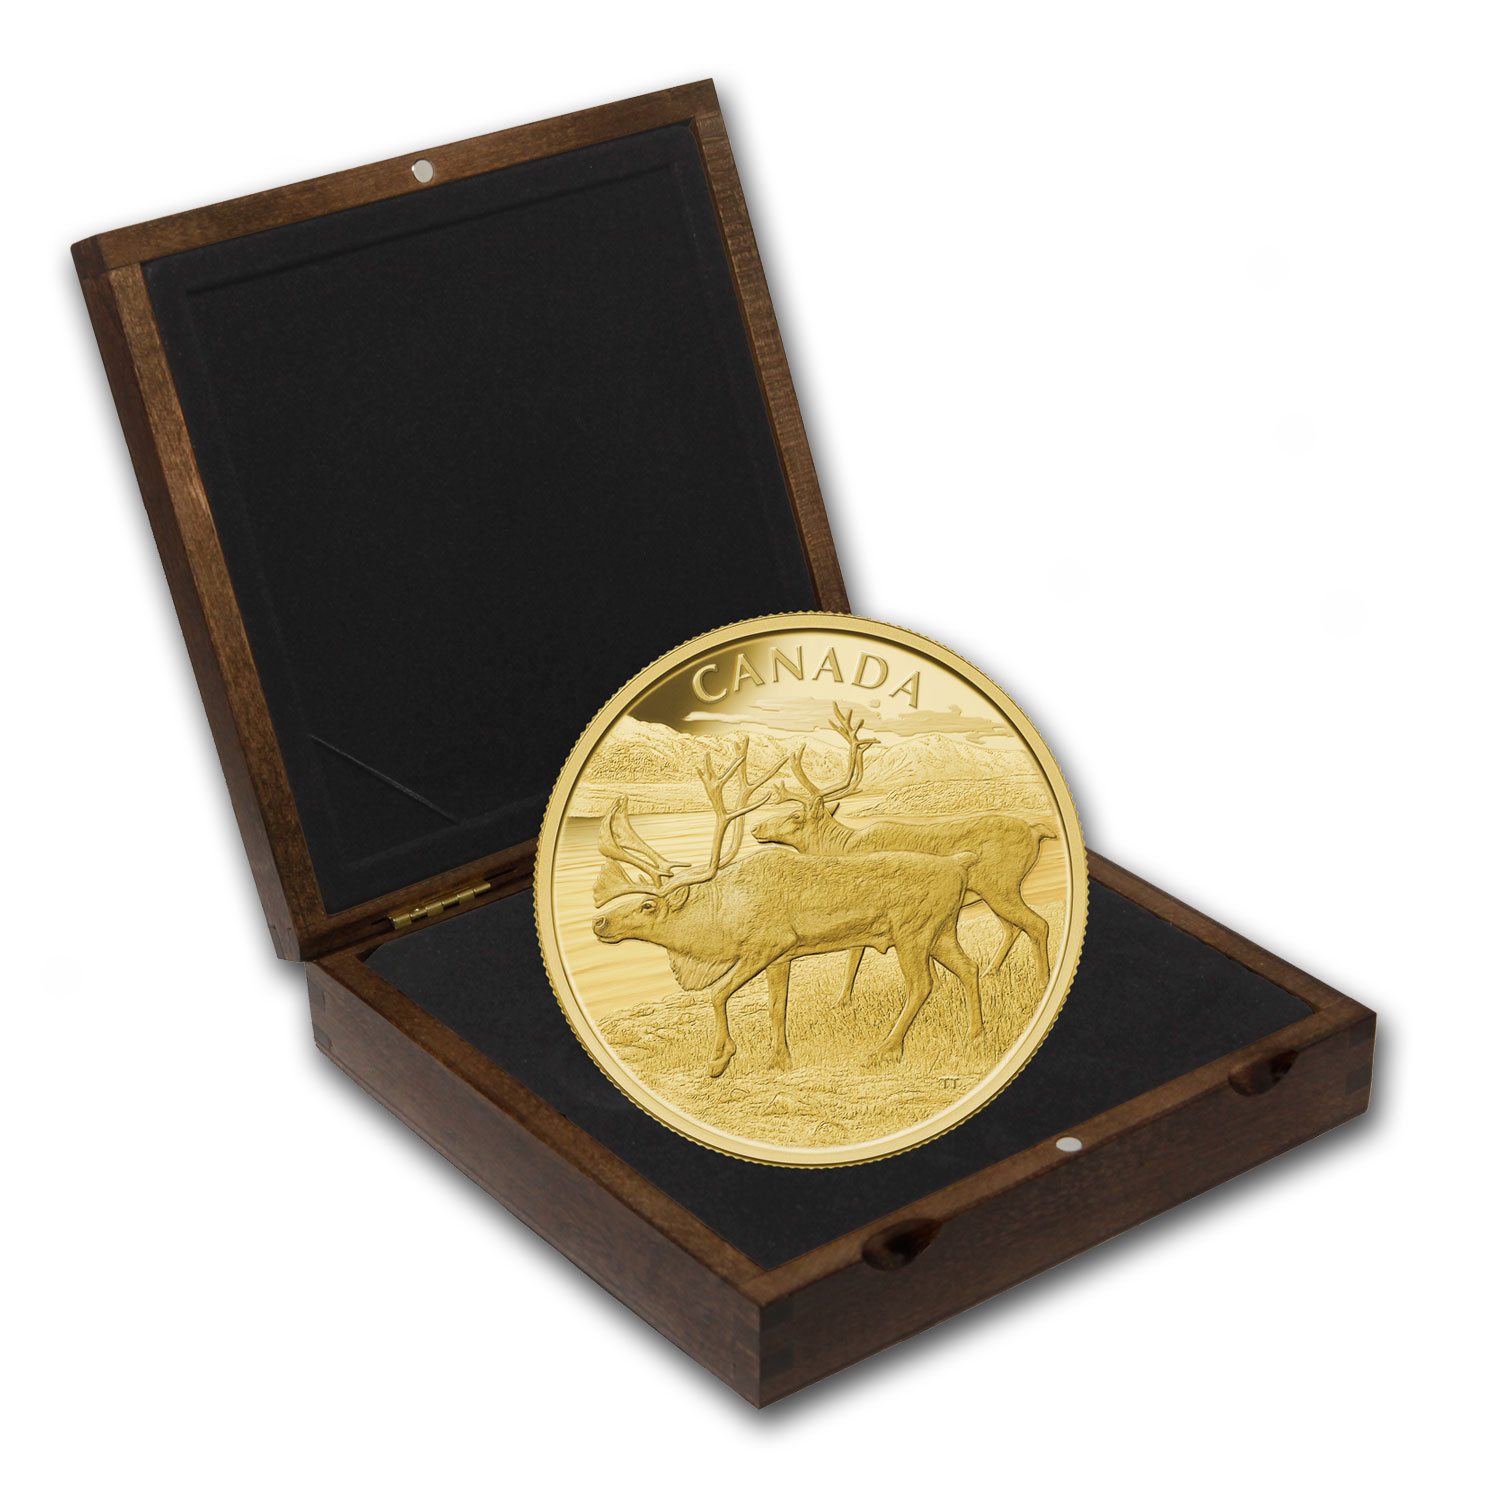 2013 Canada 1 kilo Proof Gold $2,500 The Caribou